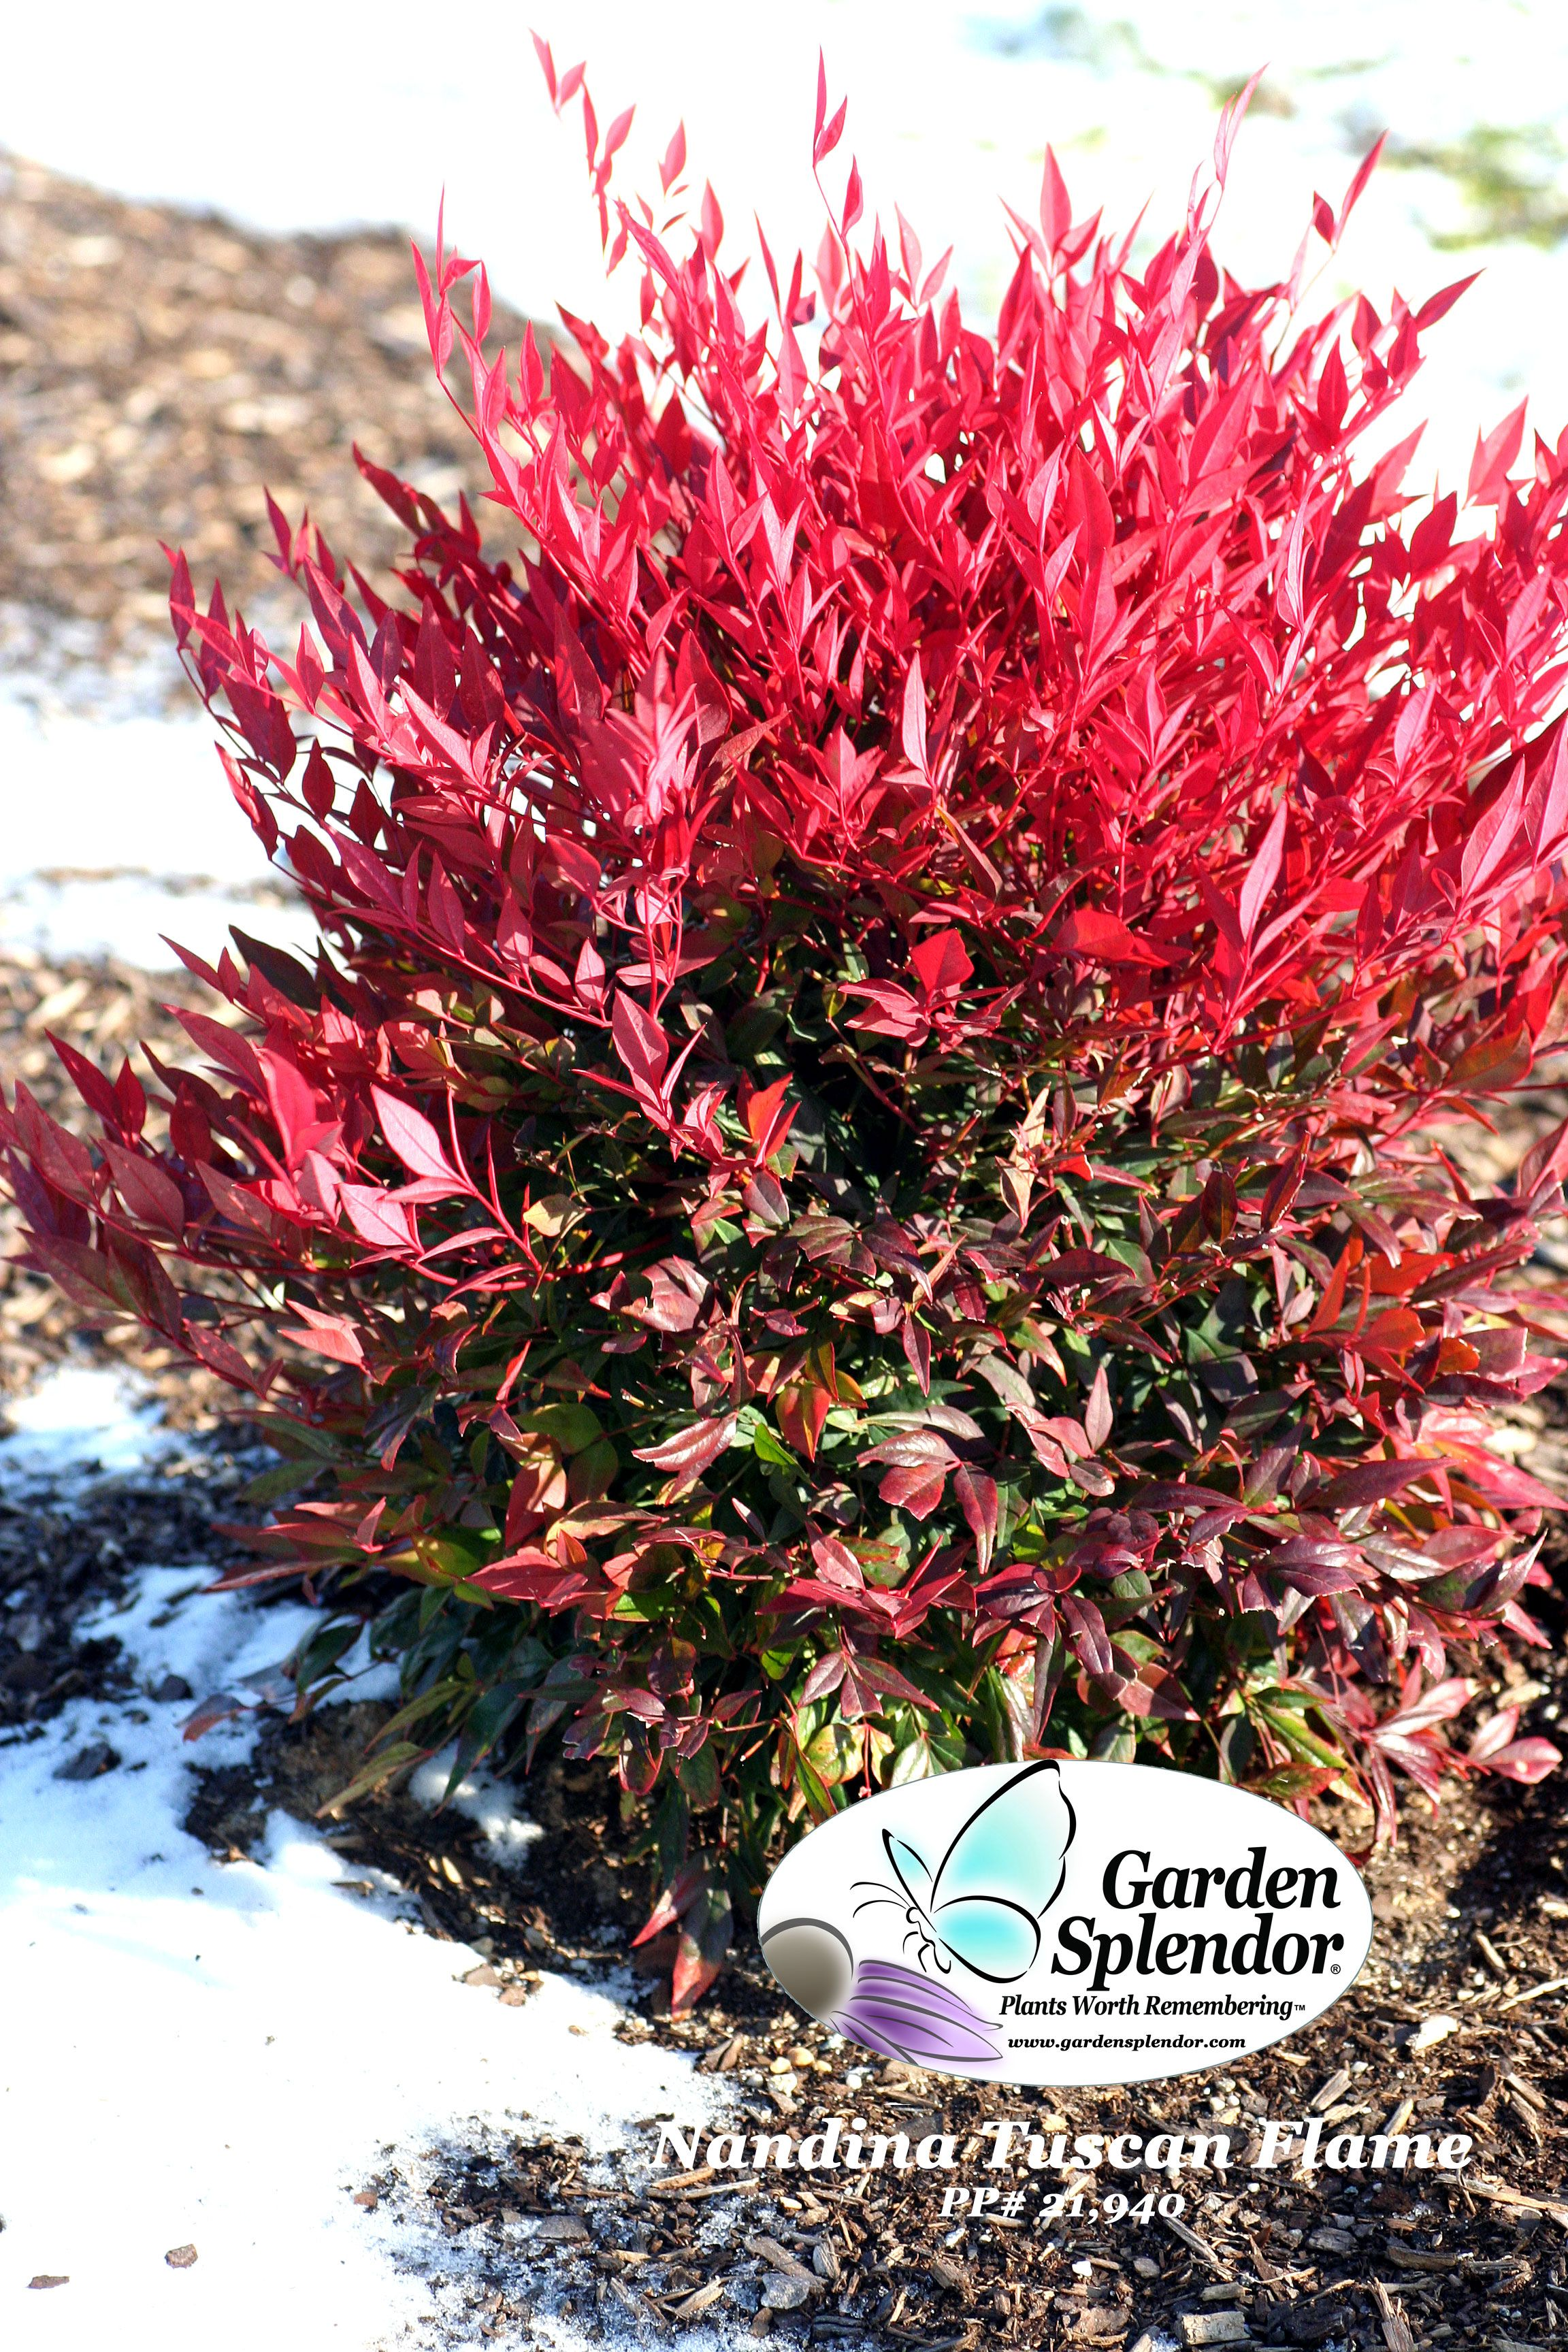 Nandina Tuscan Flame Heavenly Bamboo With It S Bright Colorful Evergreen Foliage Looks Wonderful At Evergreen Flowers Fragrant Plant Dollhouse Landscaping